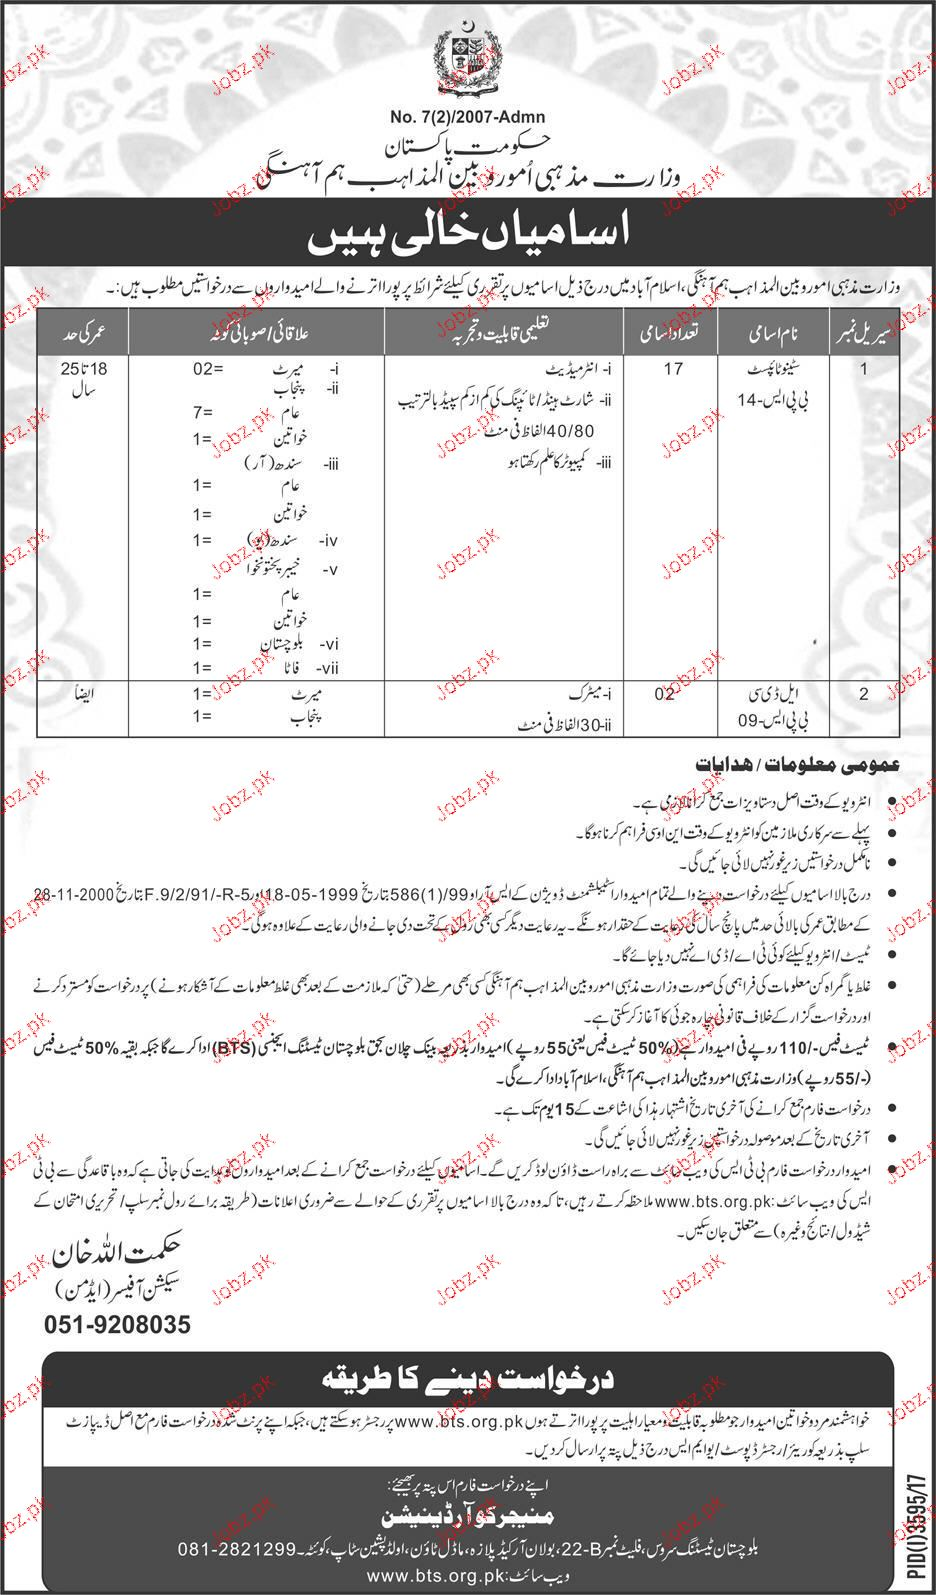 Ministry of Religious Affairs & Interfaith Harmony Jobs Open